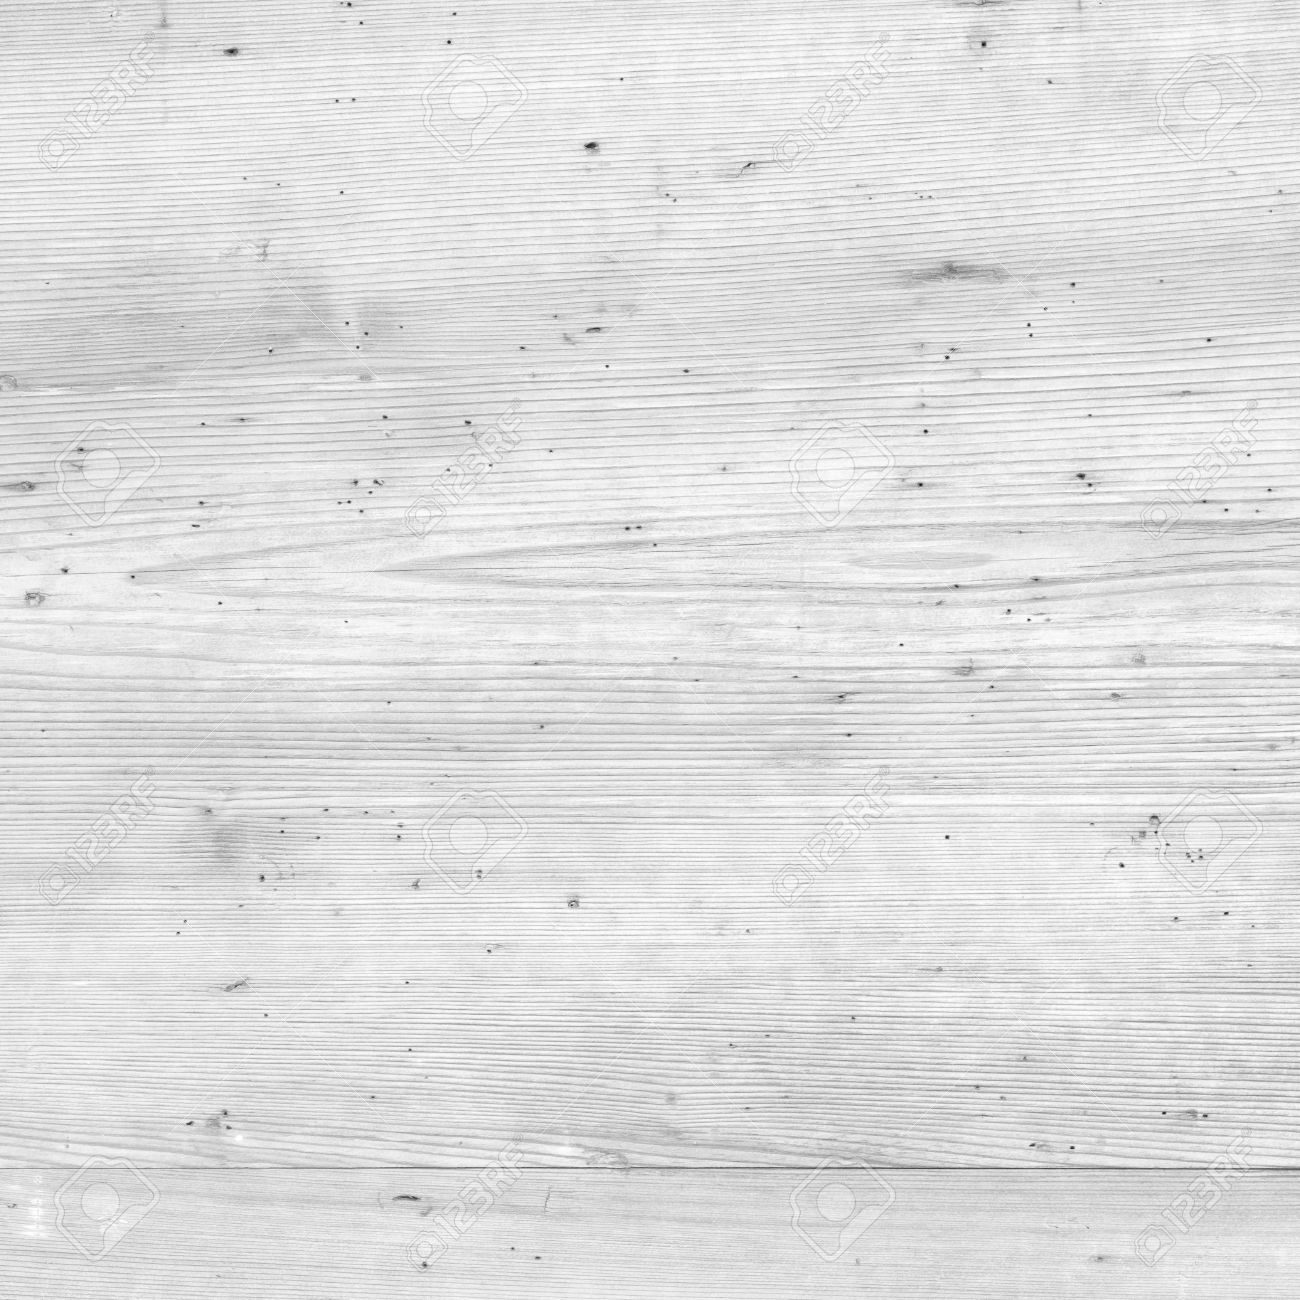 White natural wood texture and seamless background - 51193780